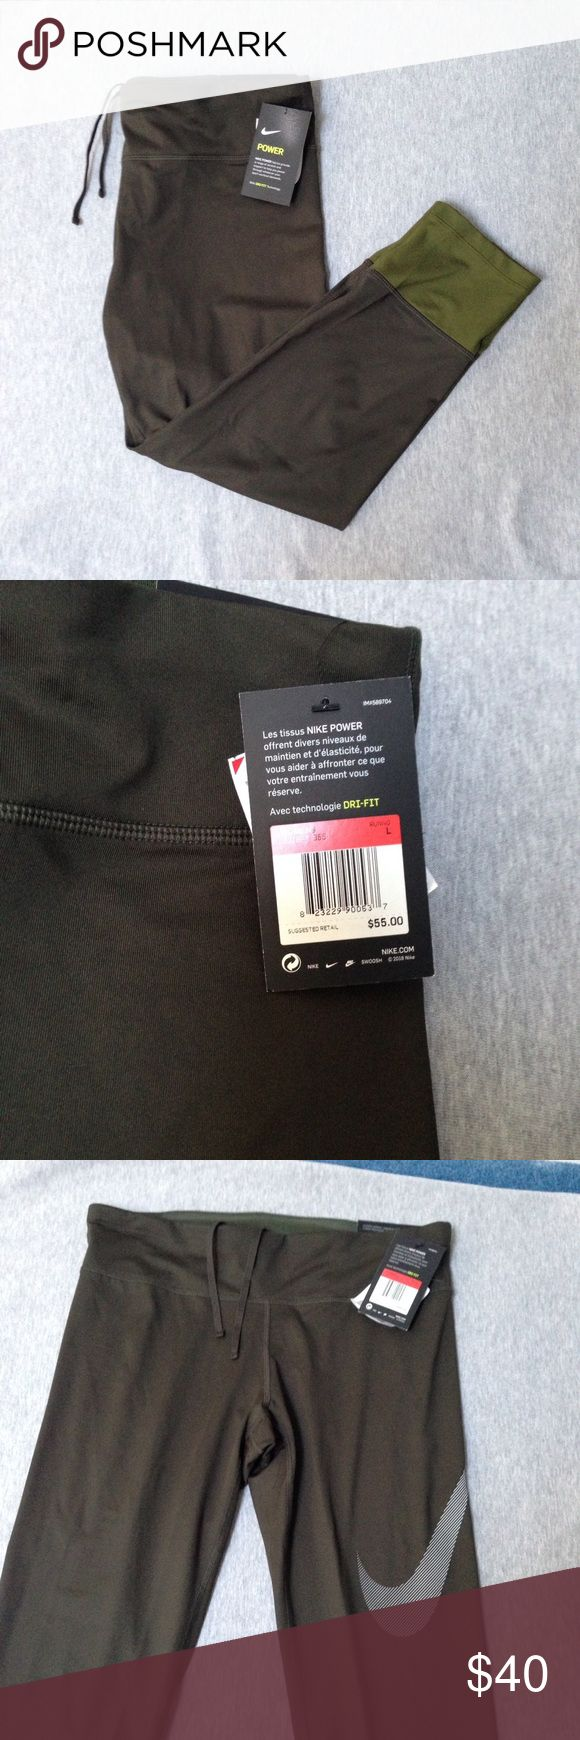 NWT Nike running pants leggings size Large Dri Fit Brand new with tags. Authentic Nike! CHECK OUT MY CLOSET FOR MORE DESIGNS SND SIZES! Nike Pants Leggings